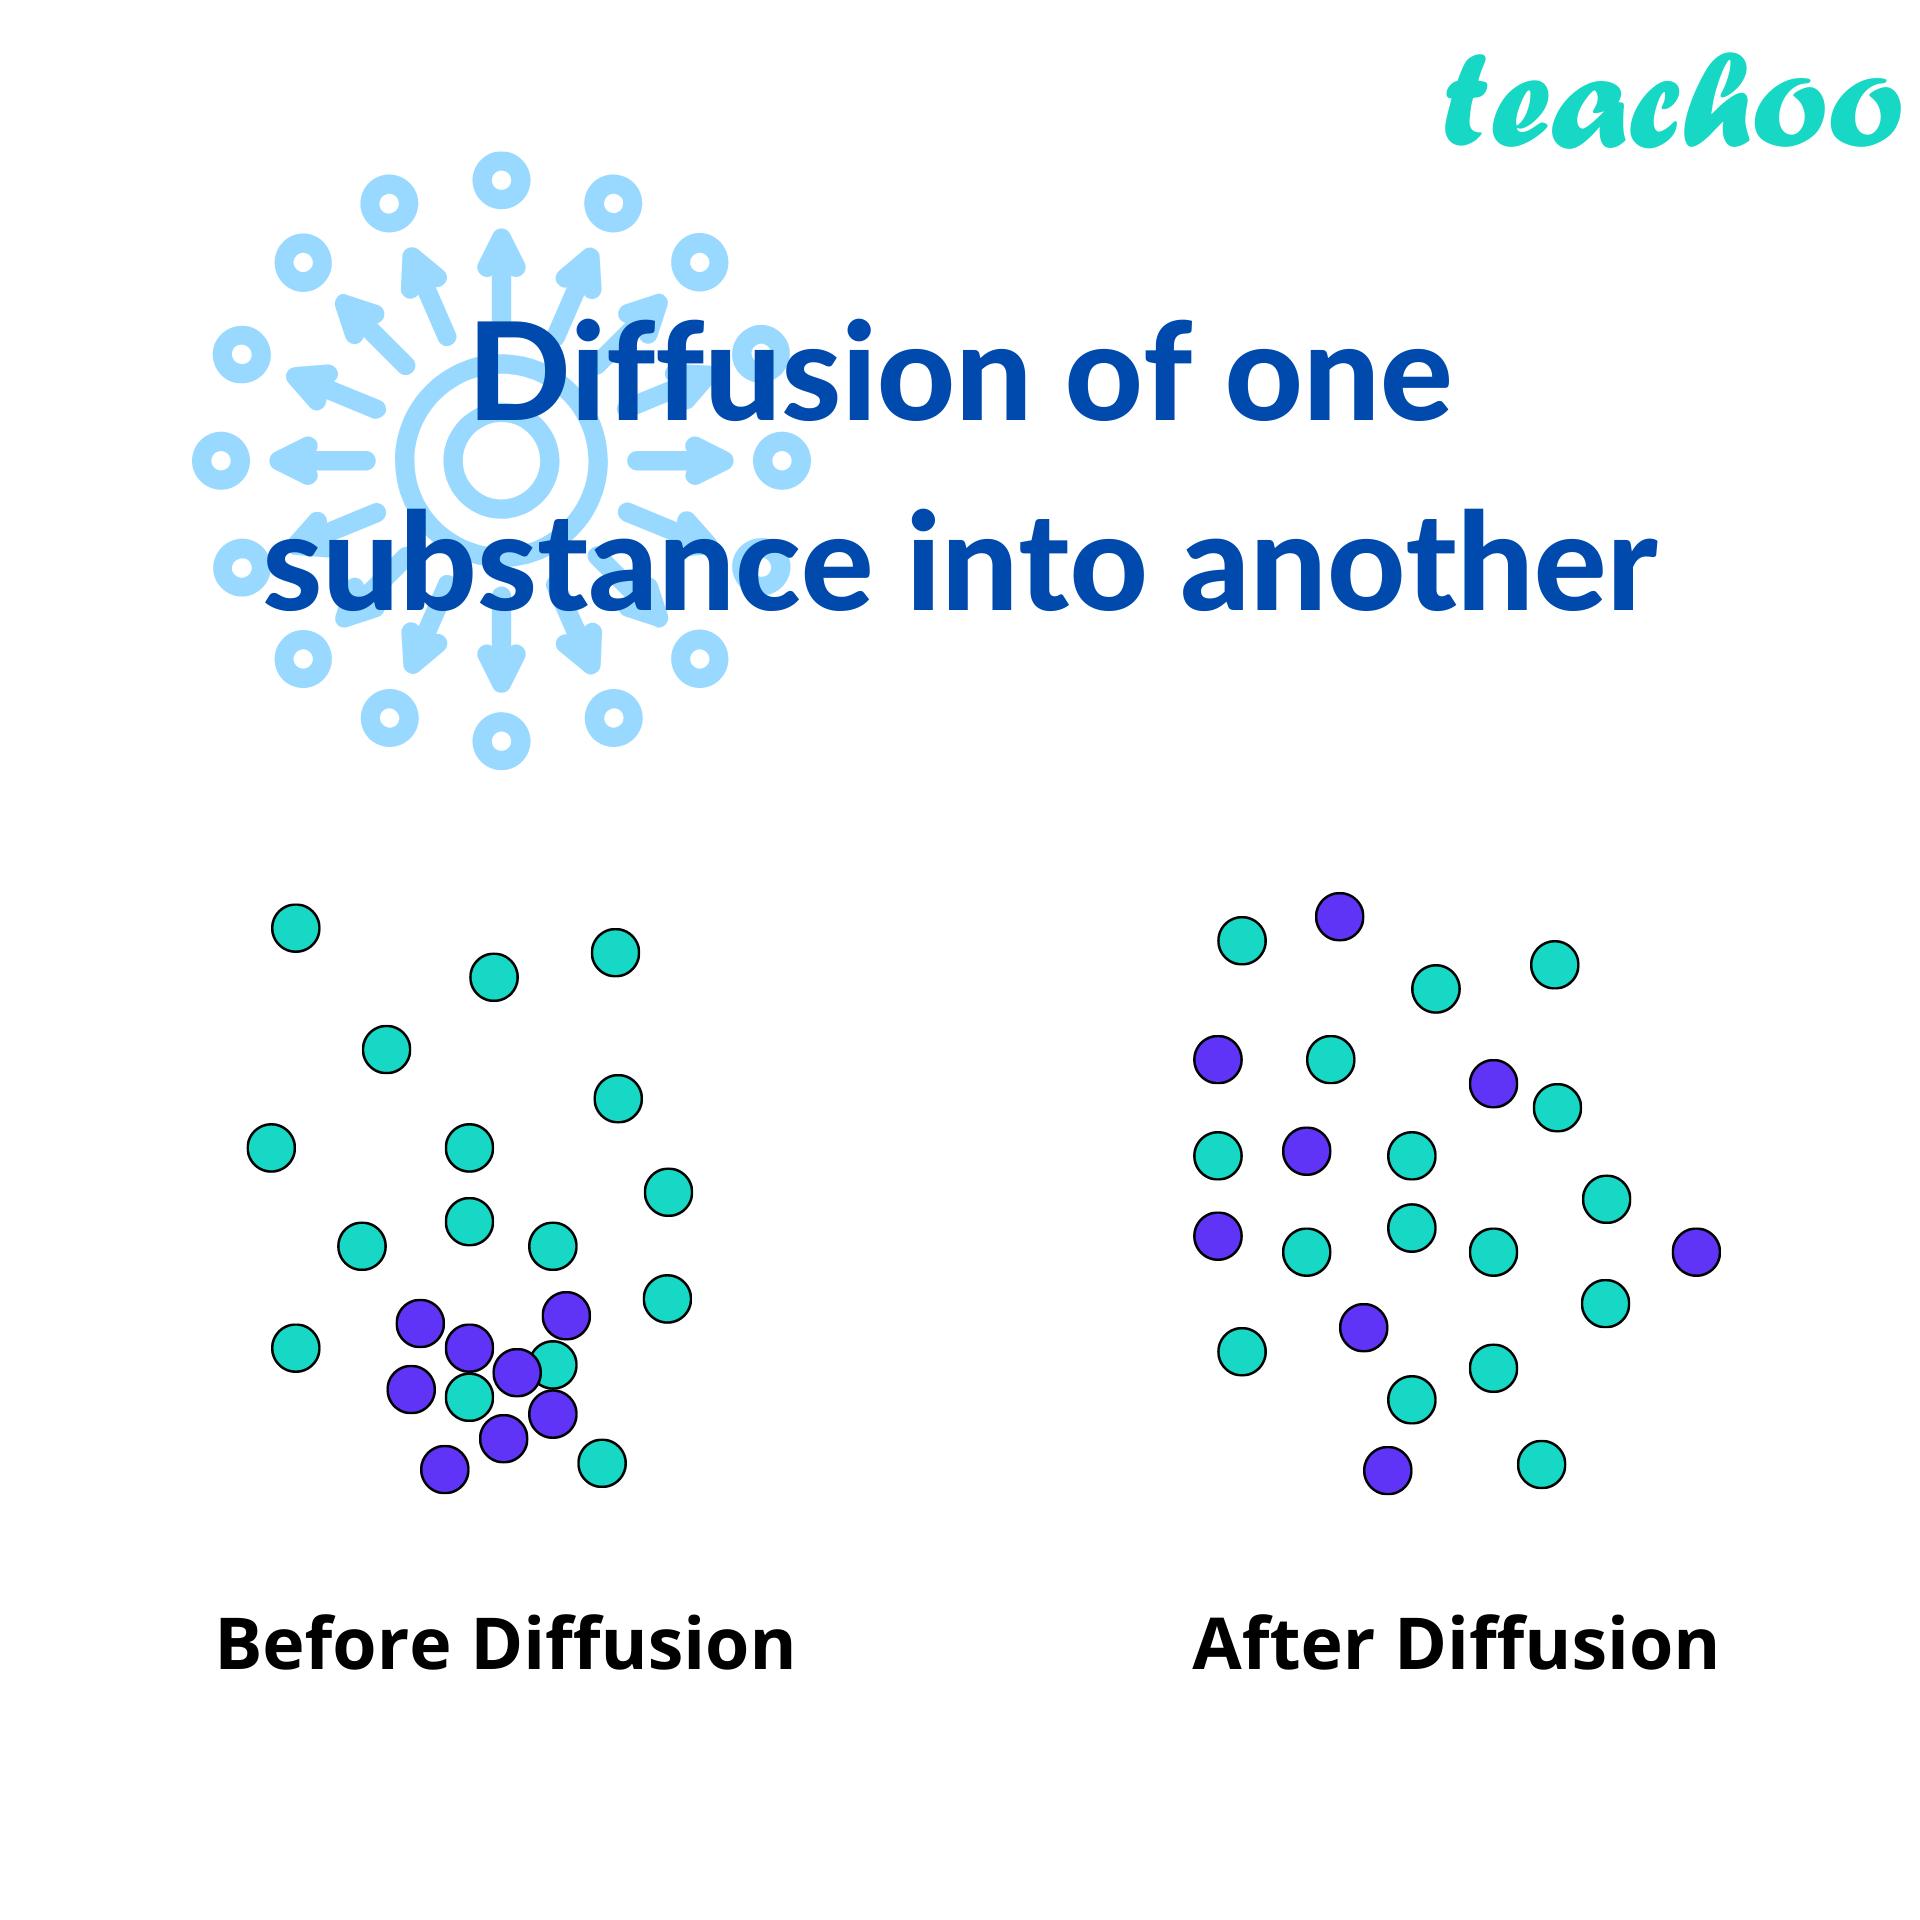 14 - Diffusion of one substance into another - Teachoo.png